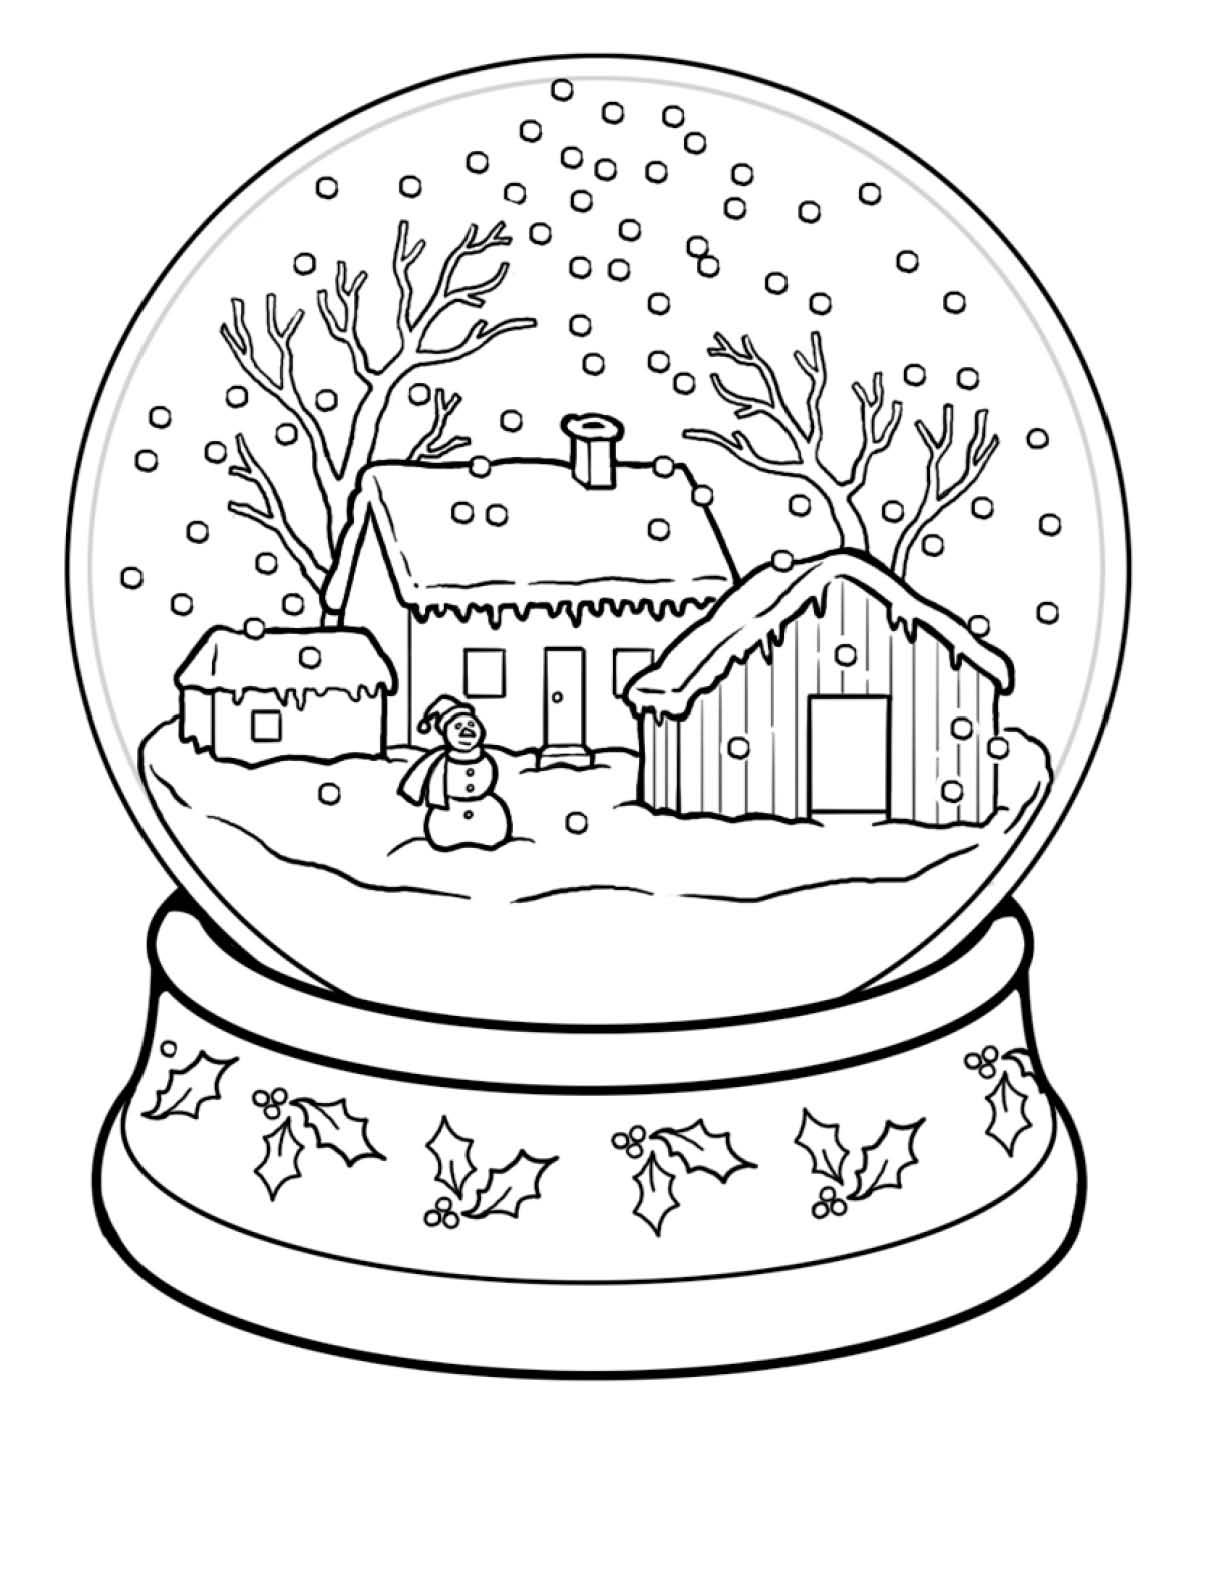 Pin by Becca Addington on Coloring Pages/Winter  Coloring pages